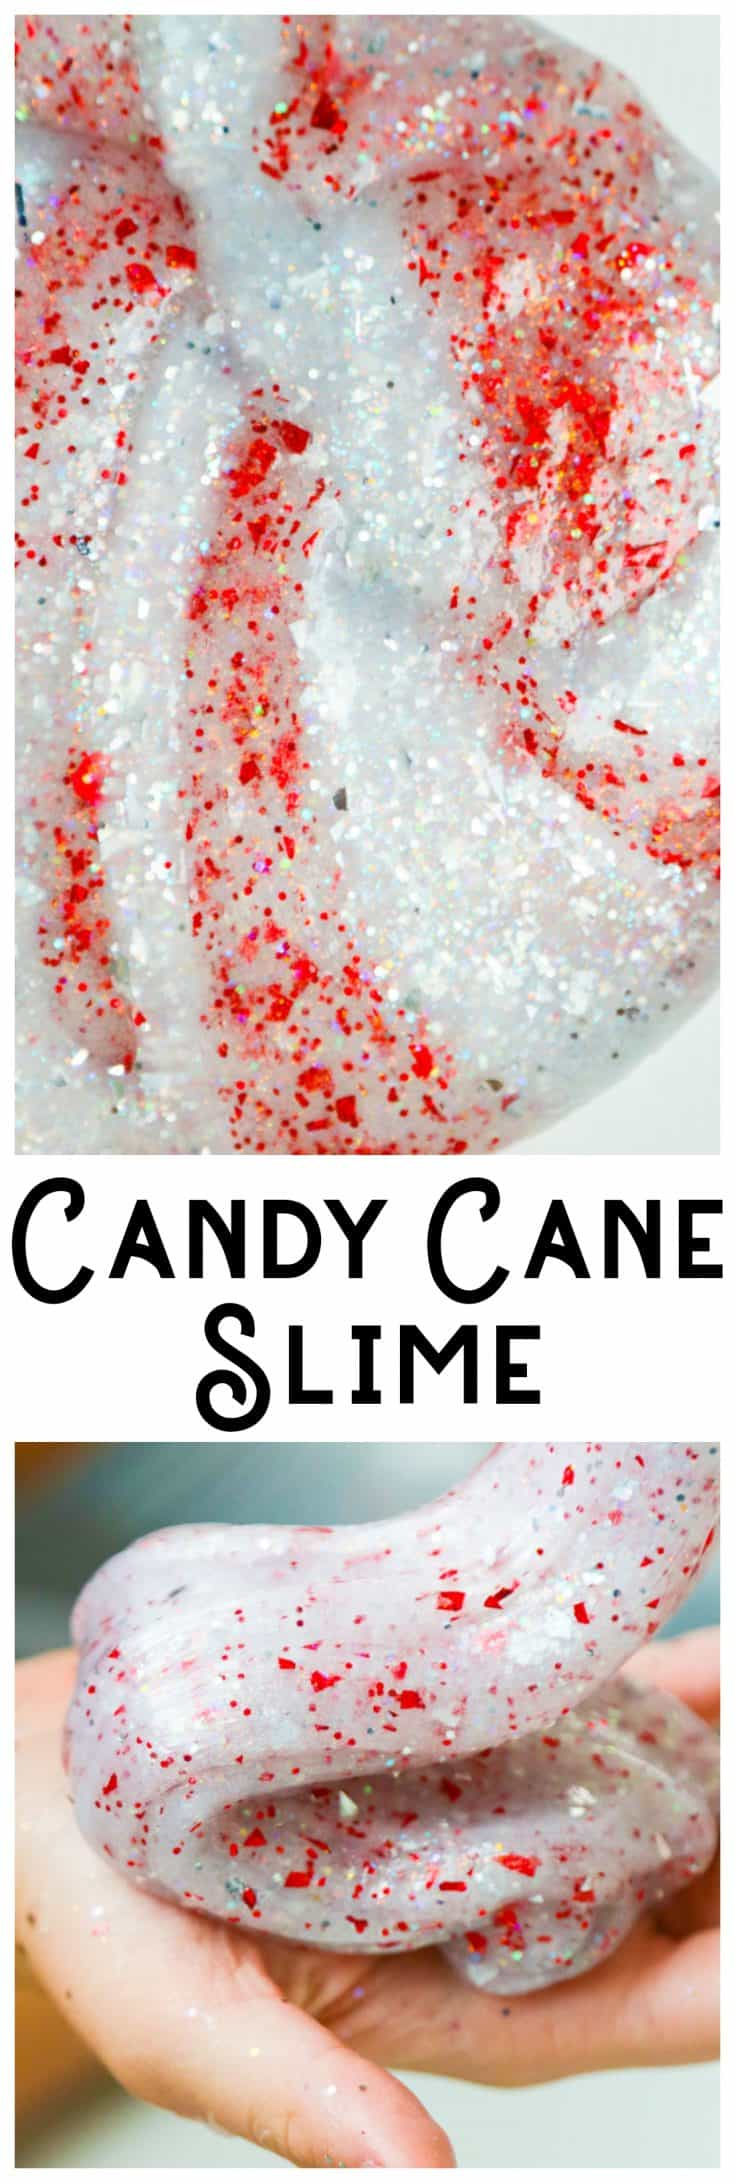 Candy Cane slime! Perfect Christmas slime that's easy to scent with a drop or two of peppermint essential oil. #slime #christmas